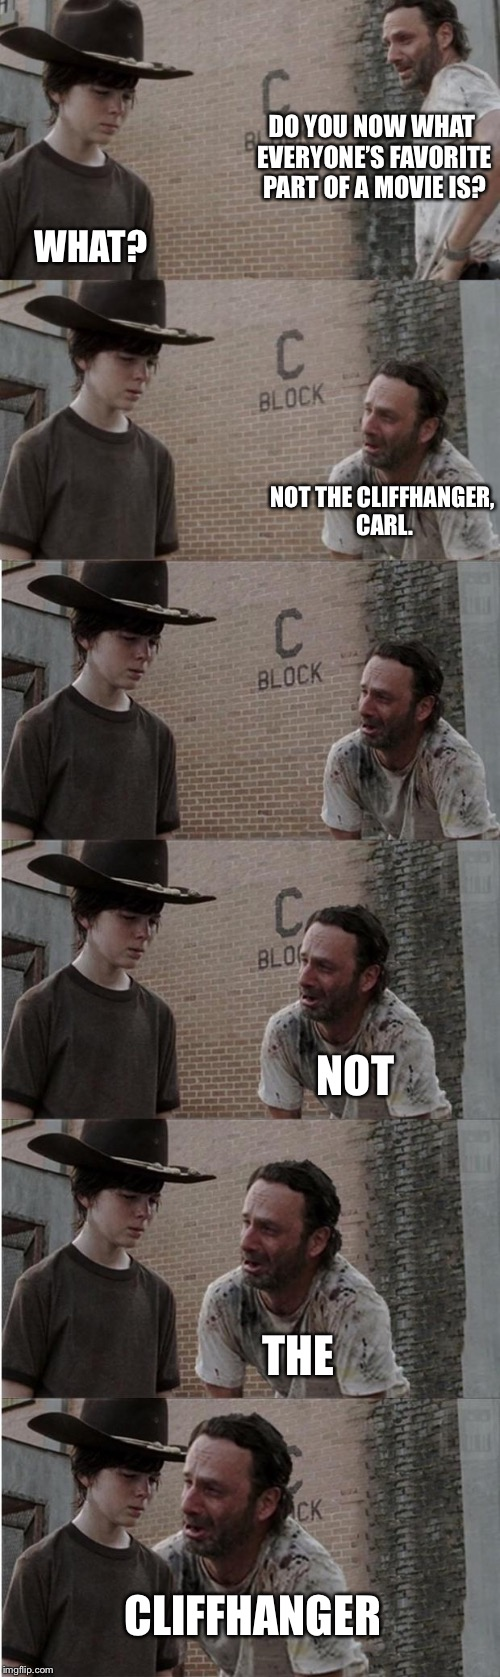 Rick and Carl Longer Meme | DO YOU NOW WHAT EVERYONE'S FAVORITE PART OF A MOVIE IS? WHAT? NOT THE CLIFFHANGER, CARL. NOT THE CLIFFHANGER | image tagged in memes,rick and carl longer | made w/ Imgflip meme maker